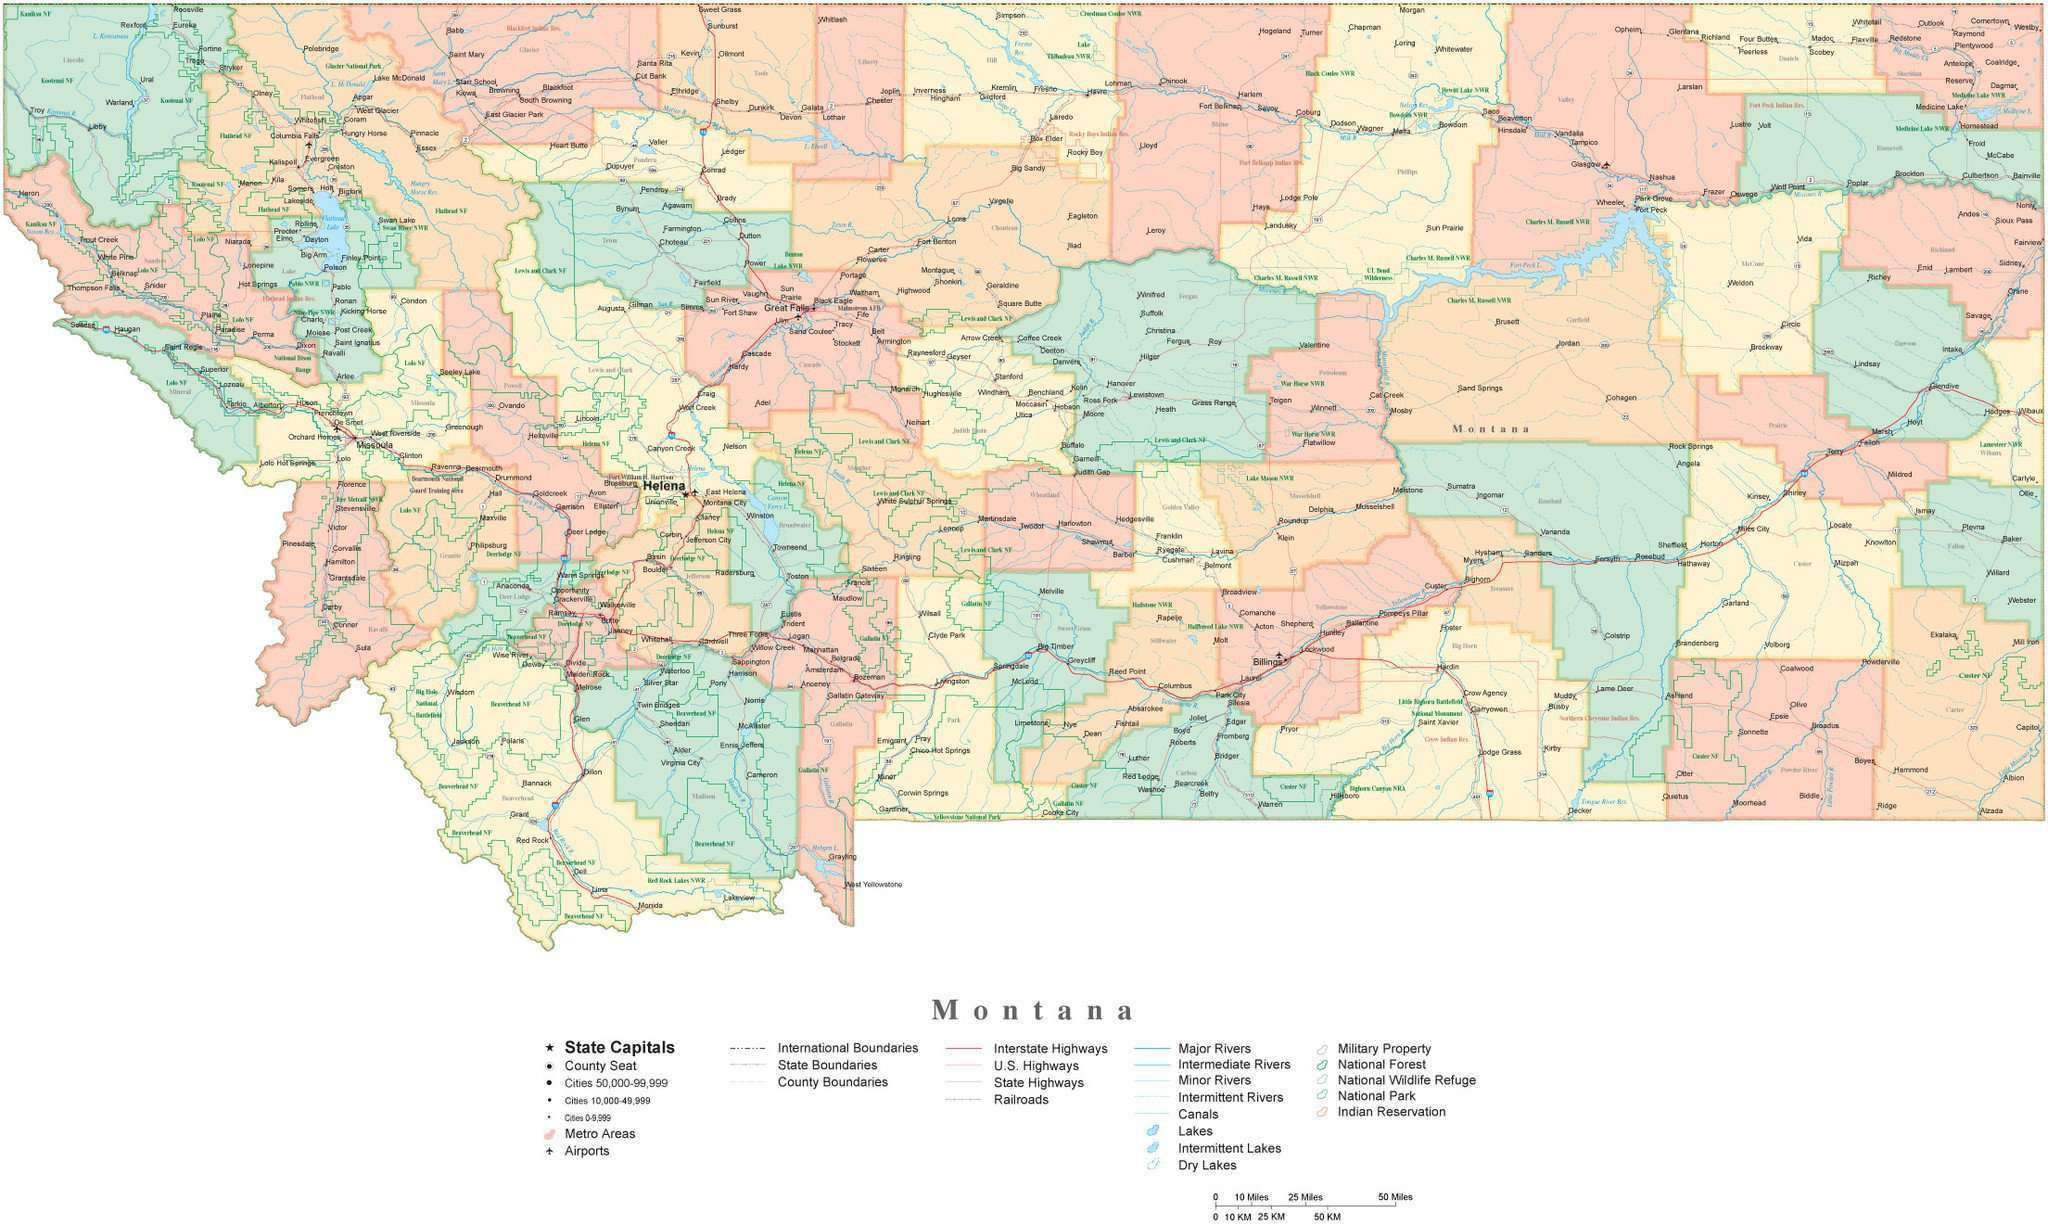 Detailed Montana Cut-Out Style Digital Map with Counties, Cities, Highways, on contour map of montana, city map of wisc, city map of northern michigan, city map of western usa, transportation of montana, city map of great falls, city map of northern kentucky, city map of oakland, city map of jamaica plain, city map of dillingham, city map of jamestown, city map of northern minnesota, city map of eastern nc, bing map of montana, city map of appalachian mountains, city map of eastern tennessee, city map of southern florida, city map of texas, city map of the carolinas, city map of iowa city,